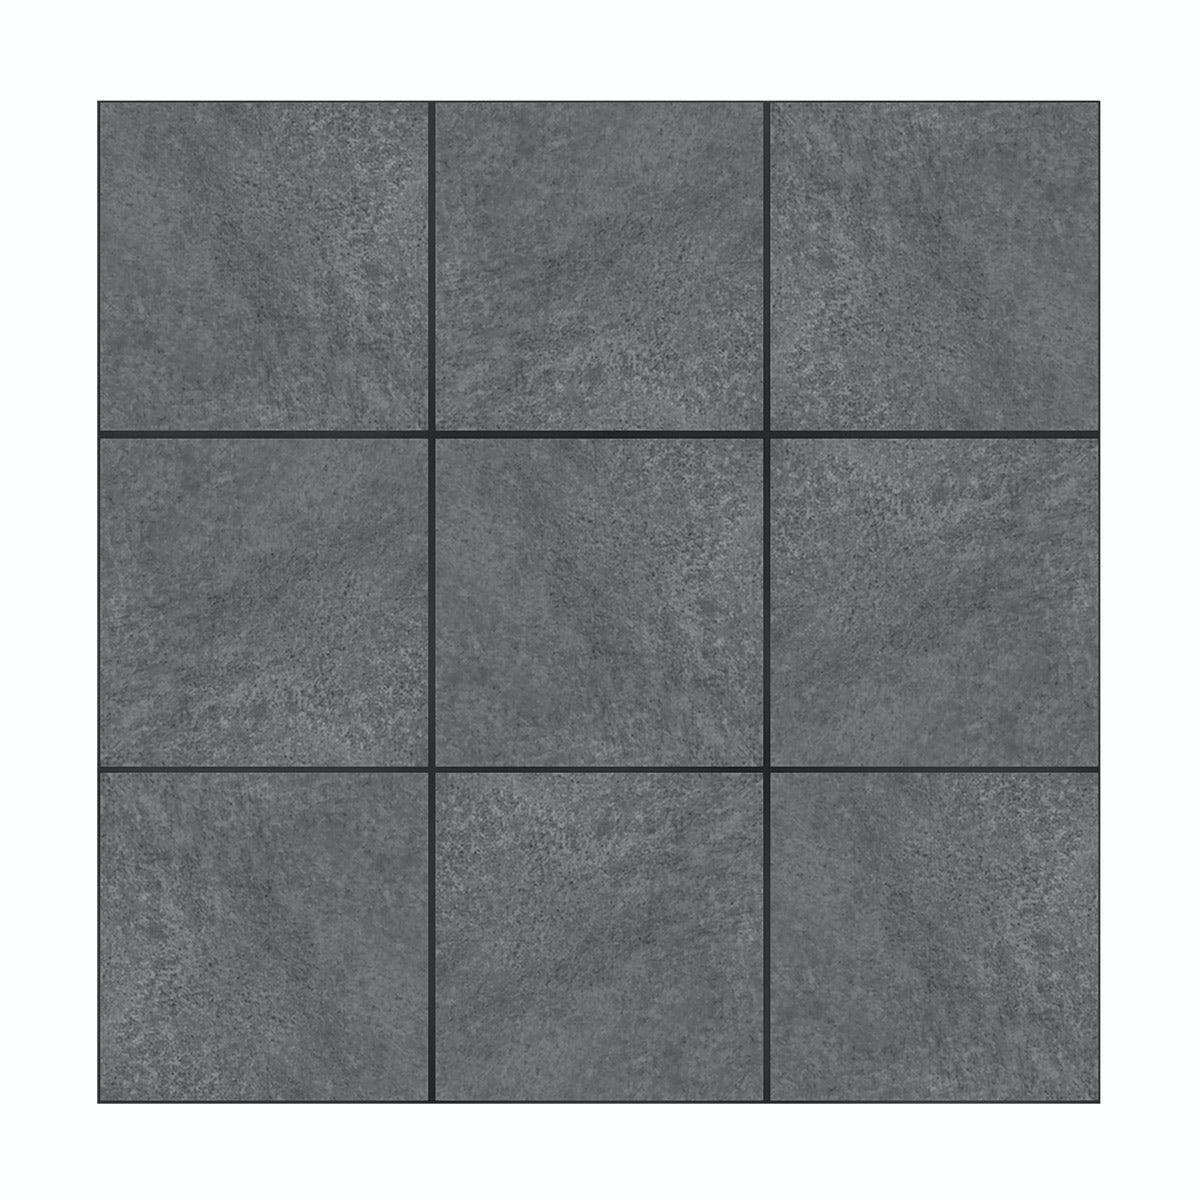 British Ceramic Tile Kaolin porcelain stone mosaic 310 x 310